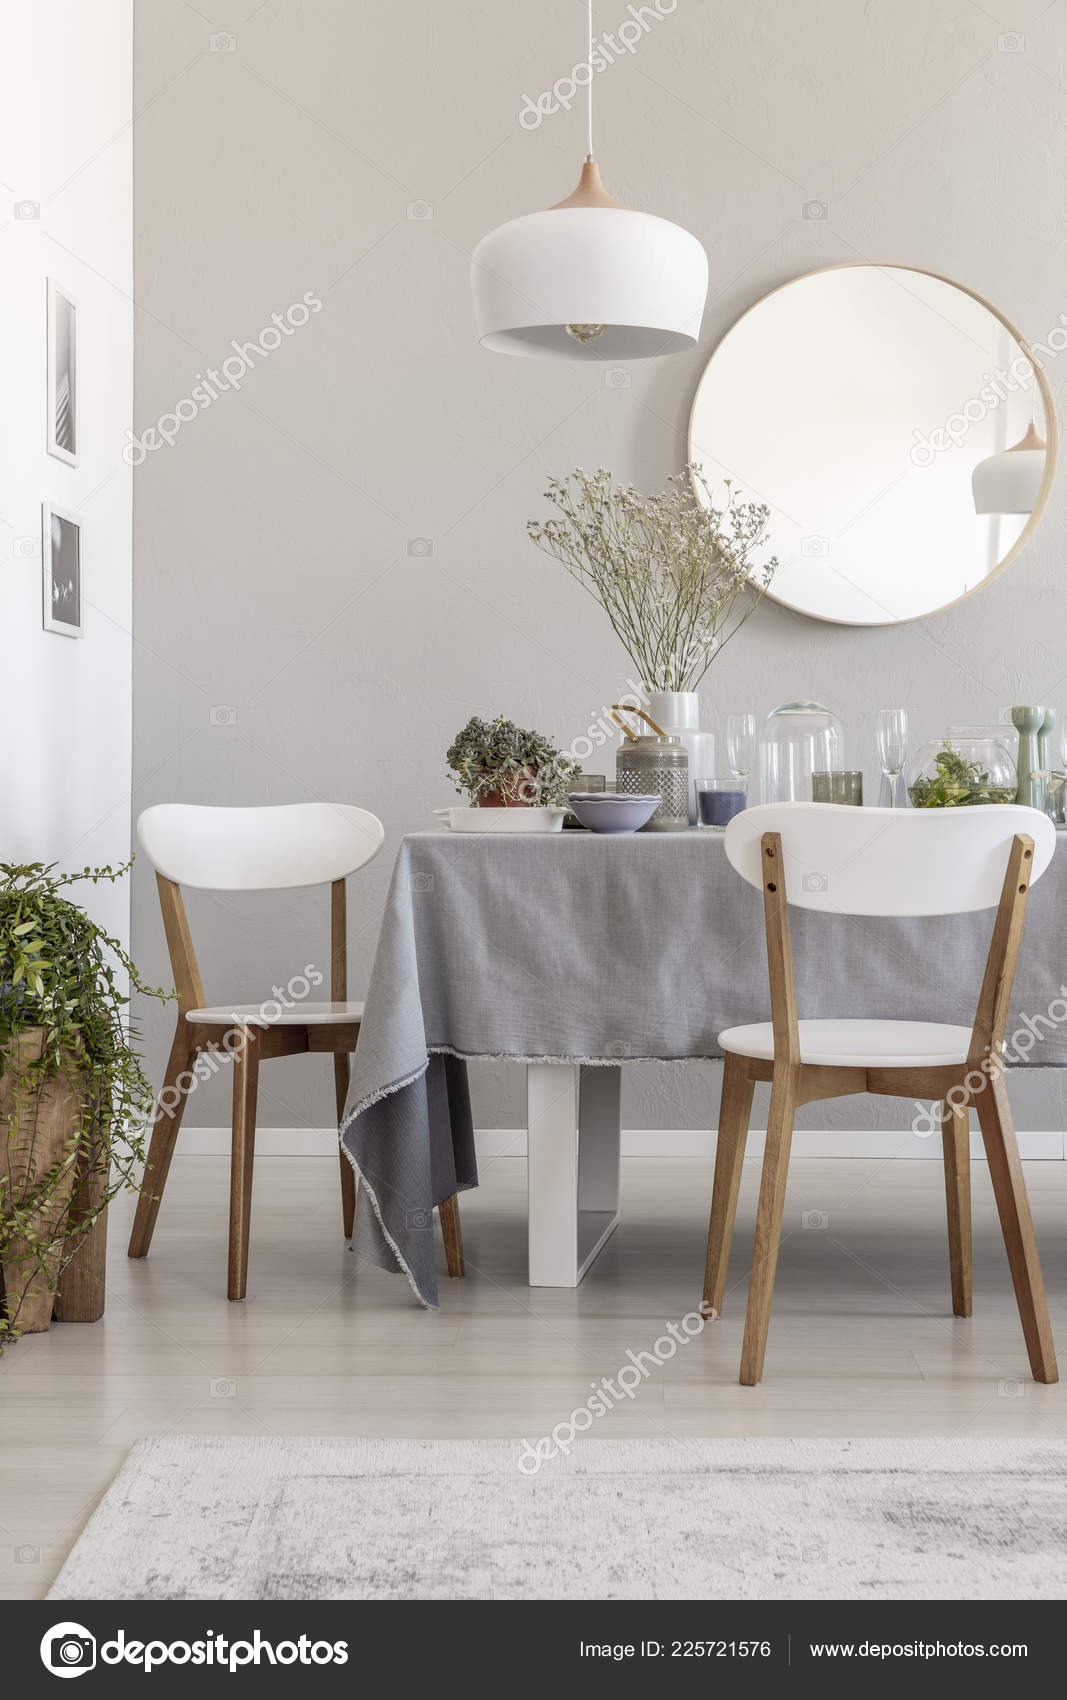 Lamp White Chairs Table Grey Dining Room Interior Plants Mirror Stock Photo Image By Photographee Eu 225721576